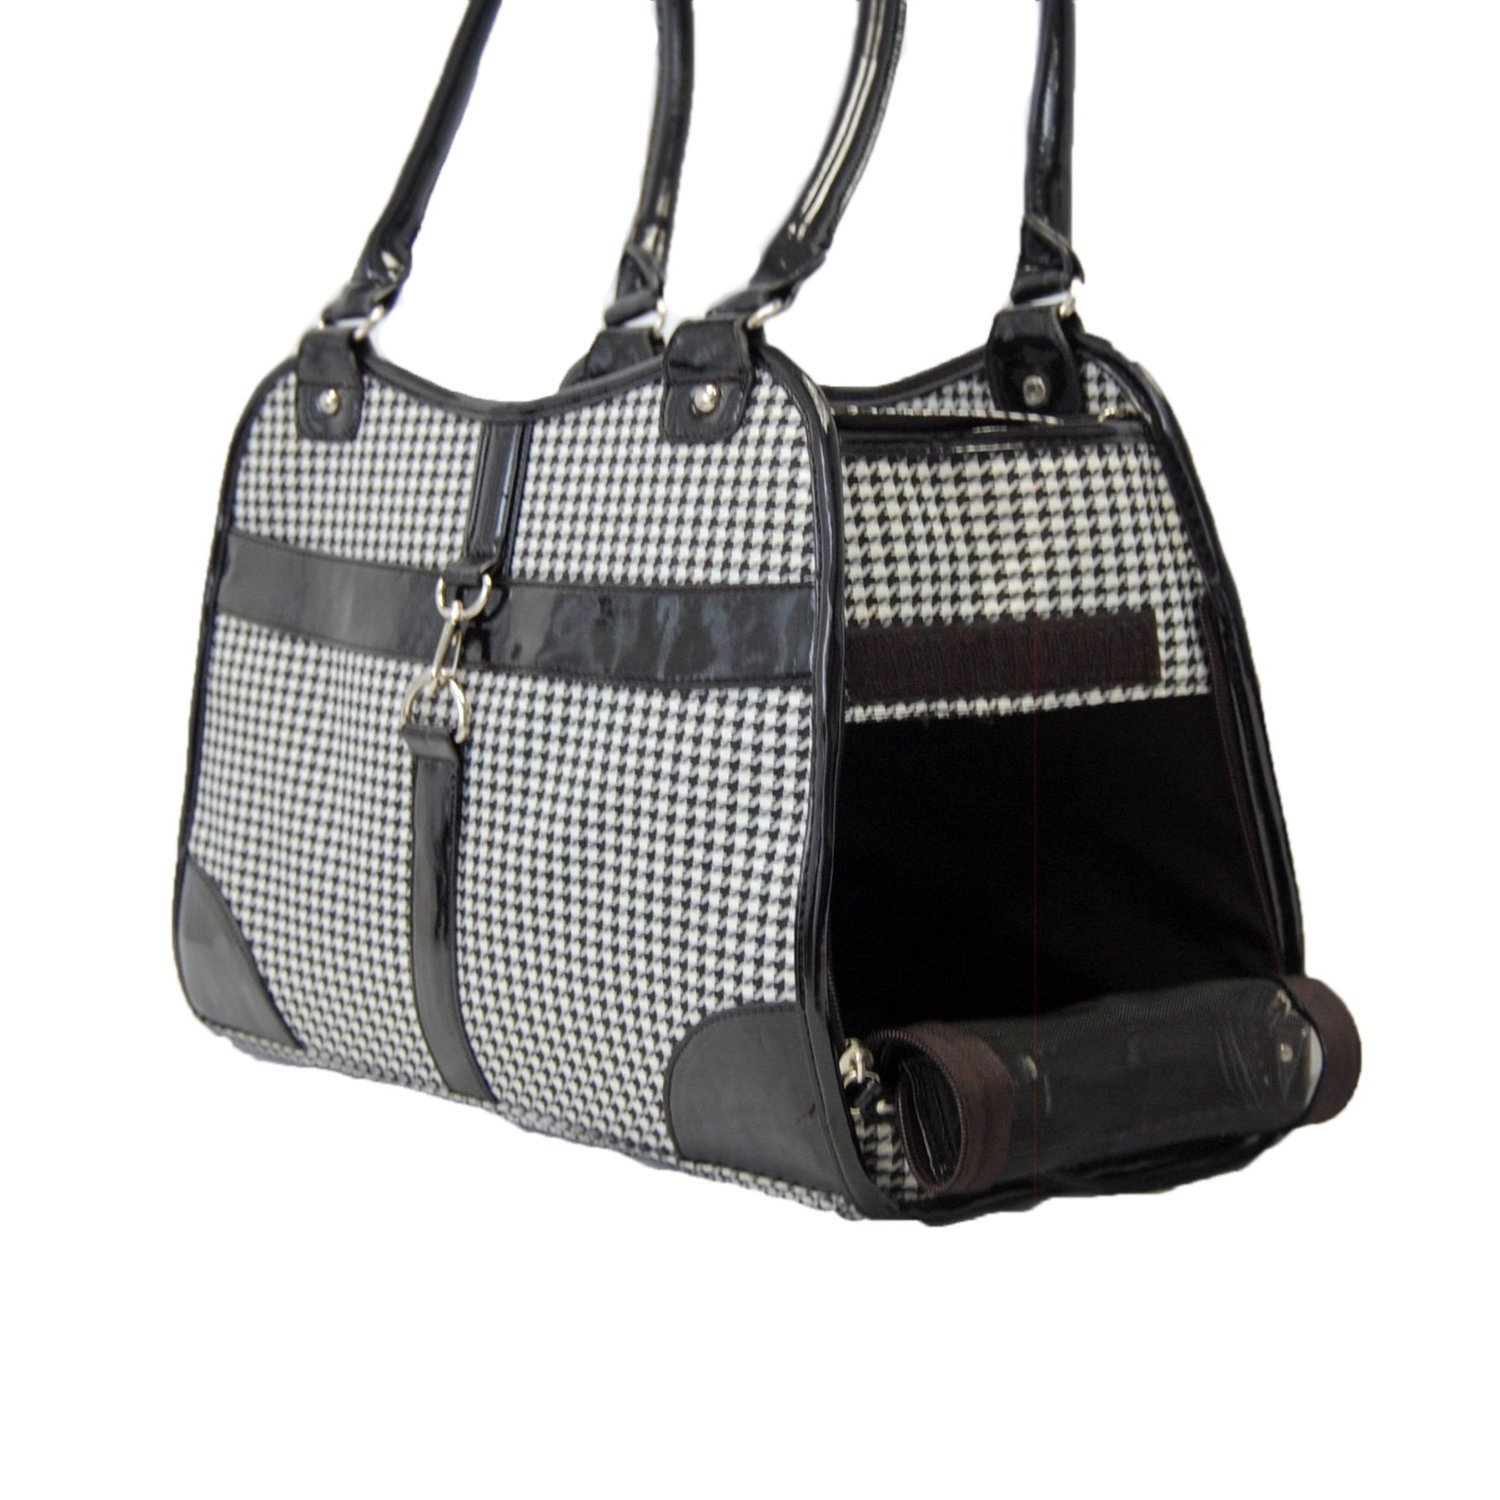 Houndstooth Print Tote Pet Dog Cat Carrier/Tote Purse Travel Airline Bag -Bla